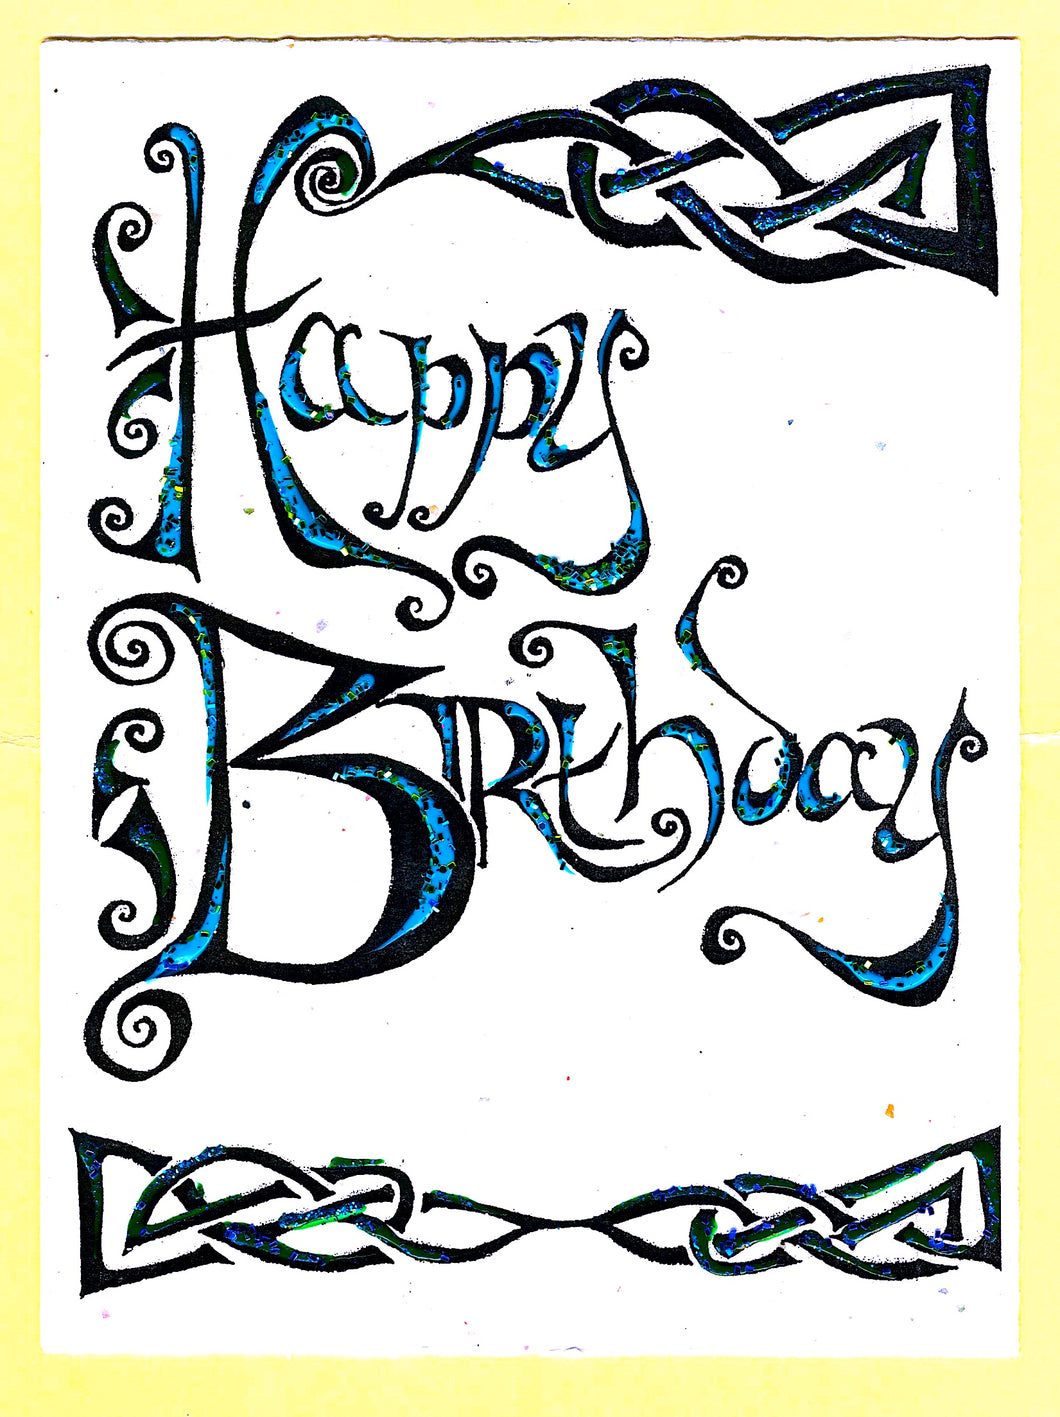 Oppenheimer - Assorted Handmade Birthday Cards, 4 Pack Colors Vary As Each Card Is Hand Colored/Decorated